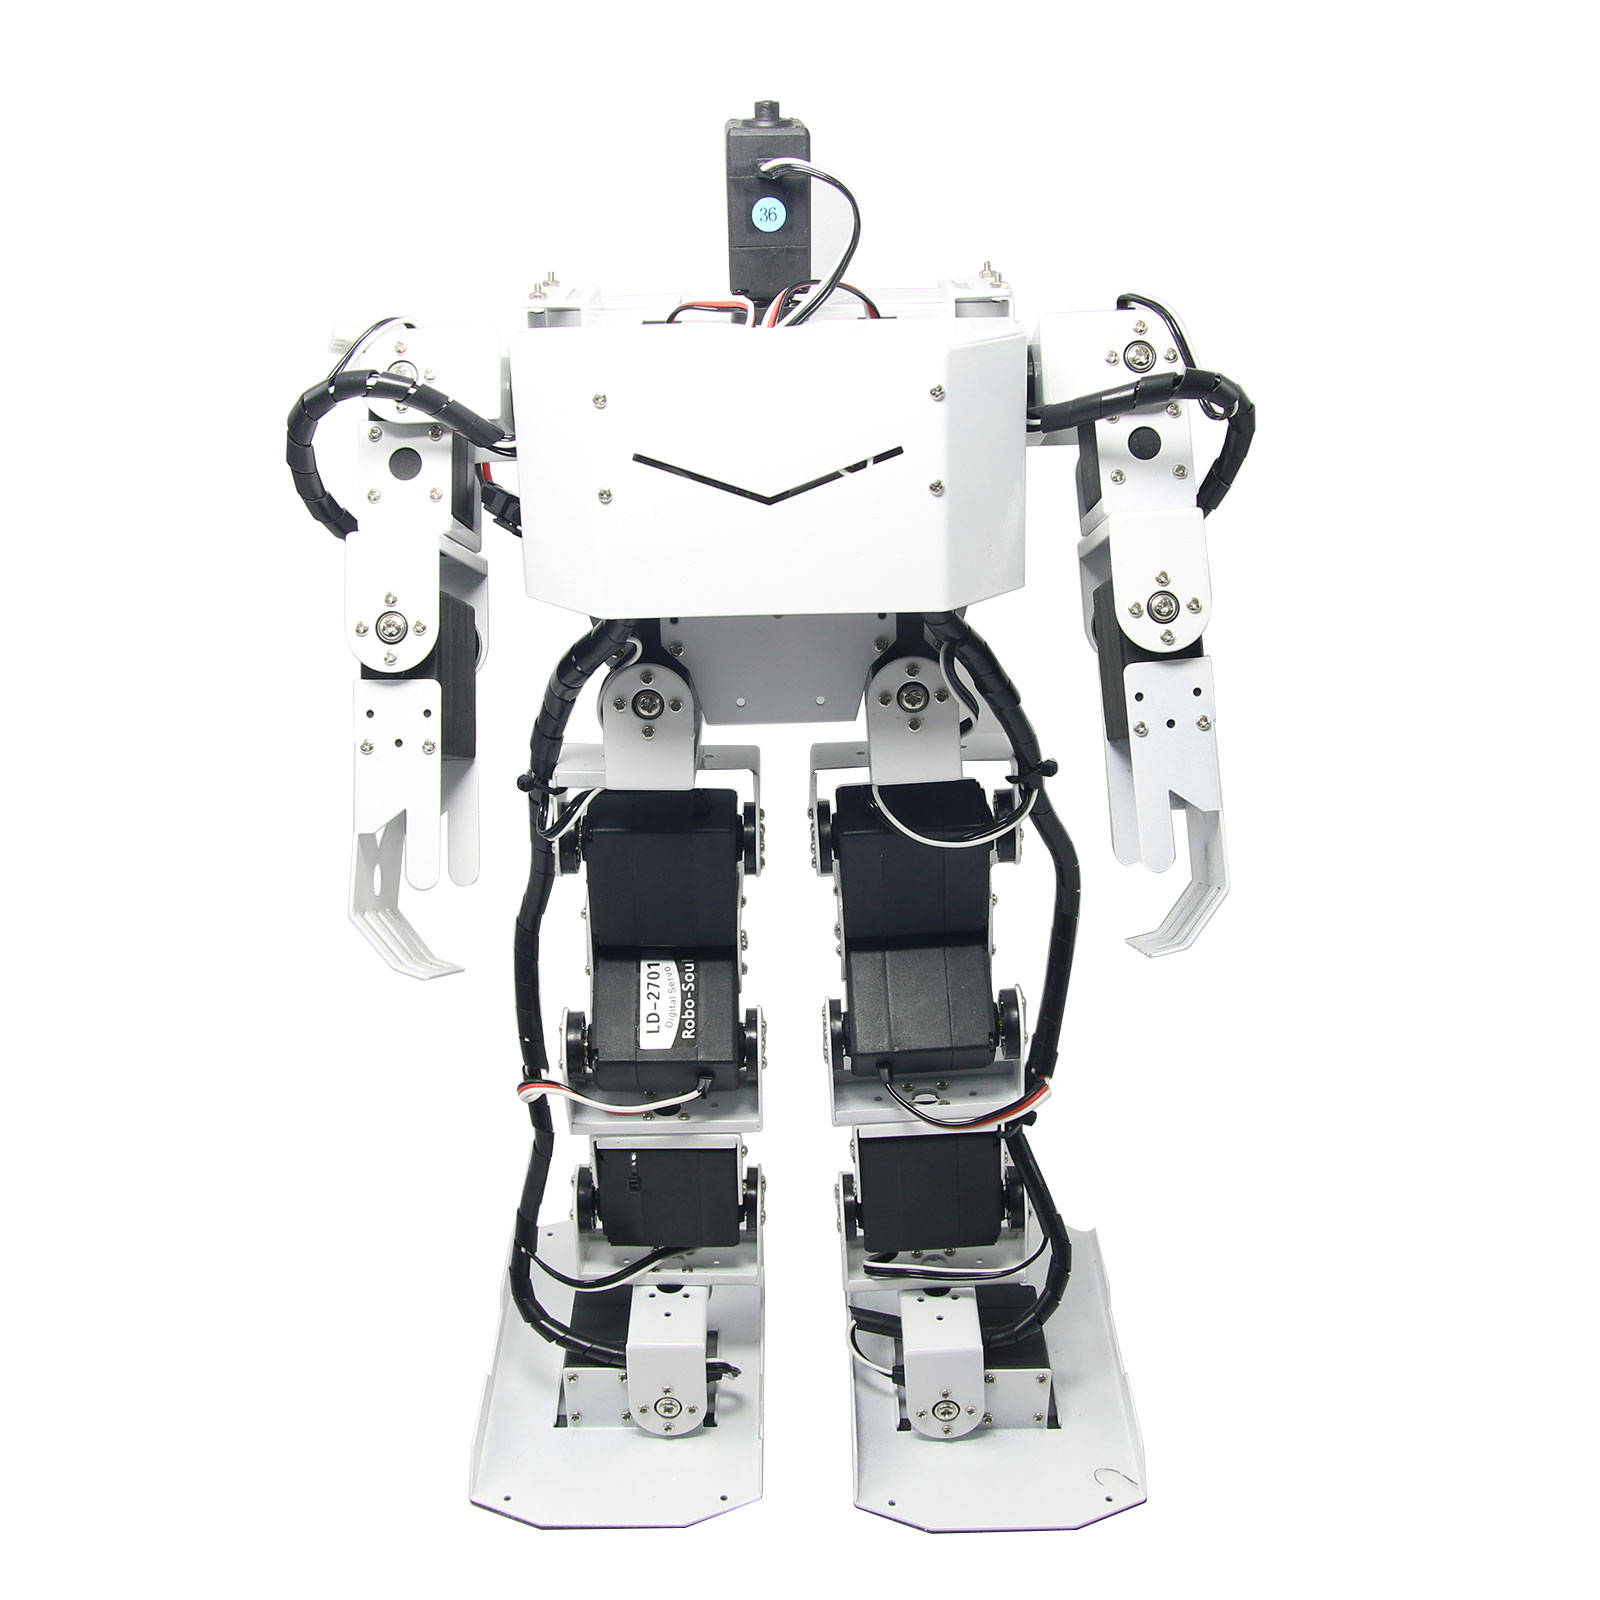 17DOF Robo-Soul H3.0 Biped Robotics Humanoid Robot Aluminum Frame Full Kit with 17pcs Servo + Controller new 17 degrees of freedom humanoid biped robot teaching and research biped robot platform model no electronic control system